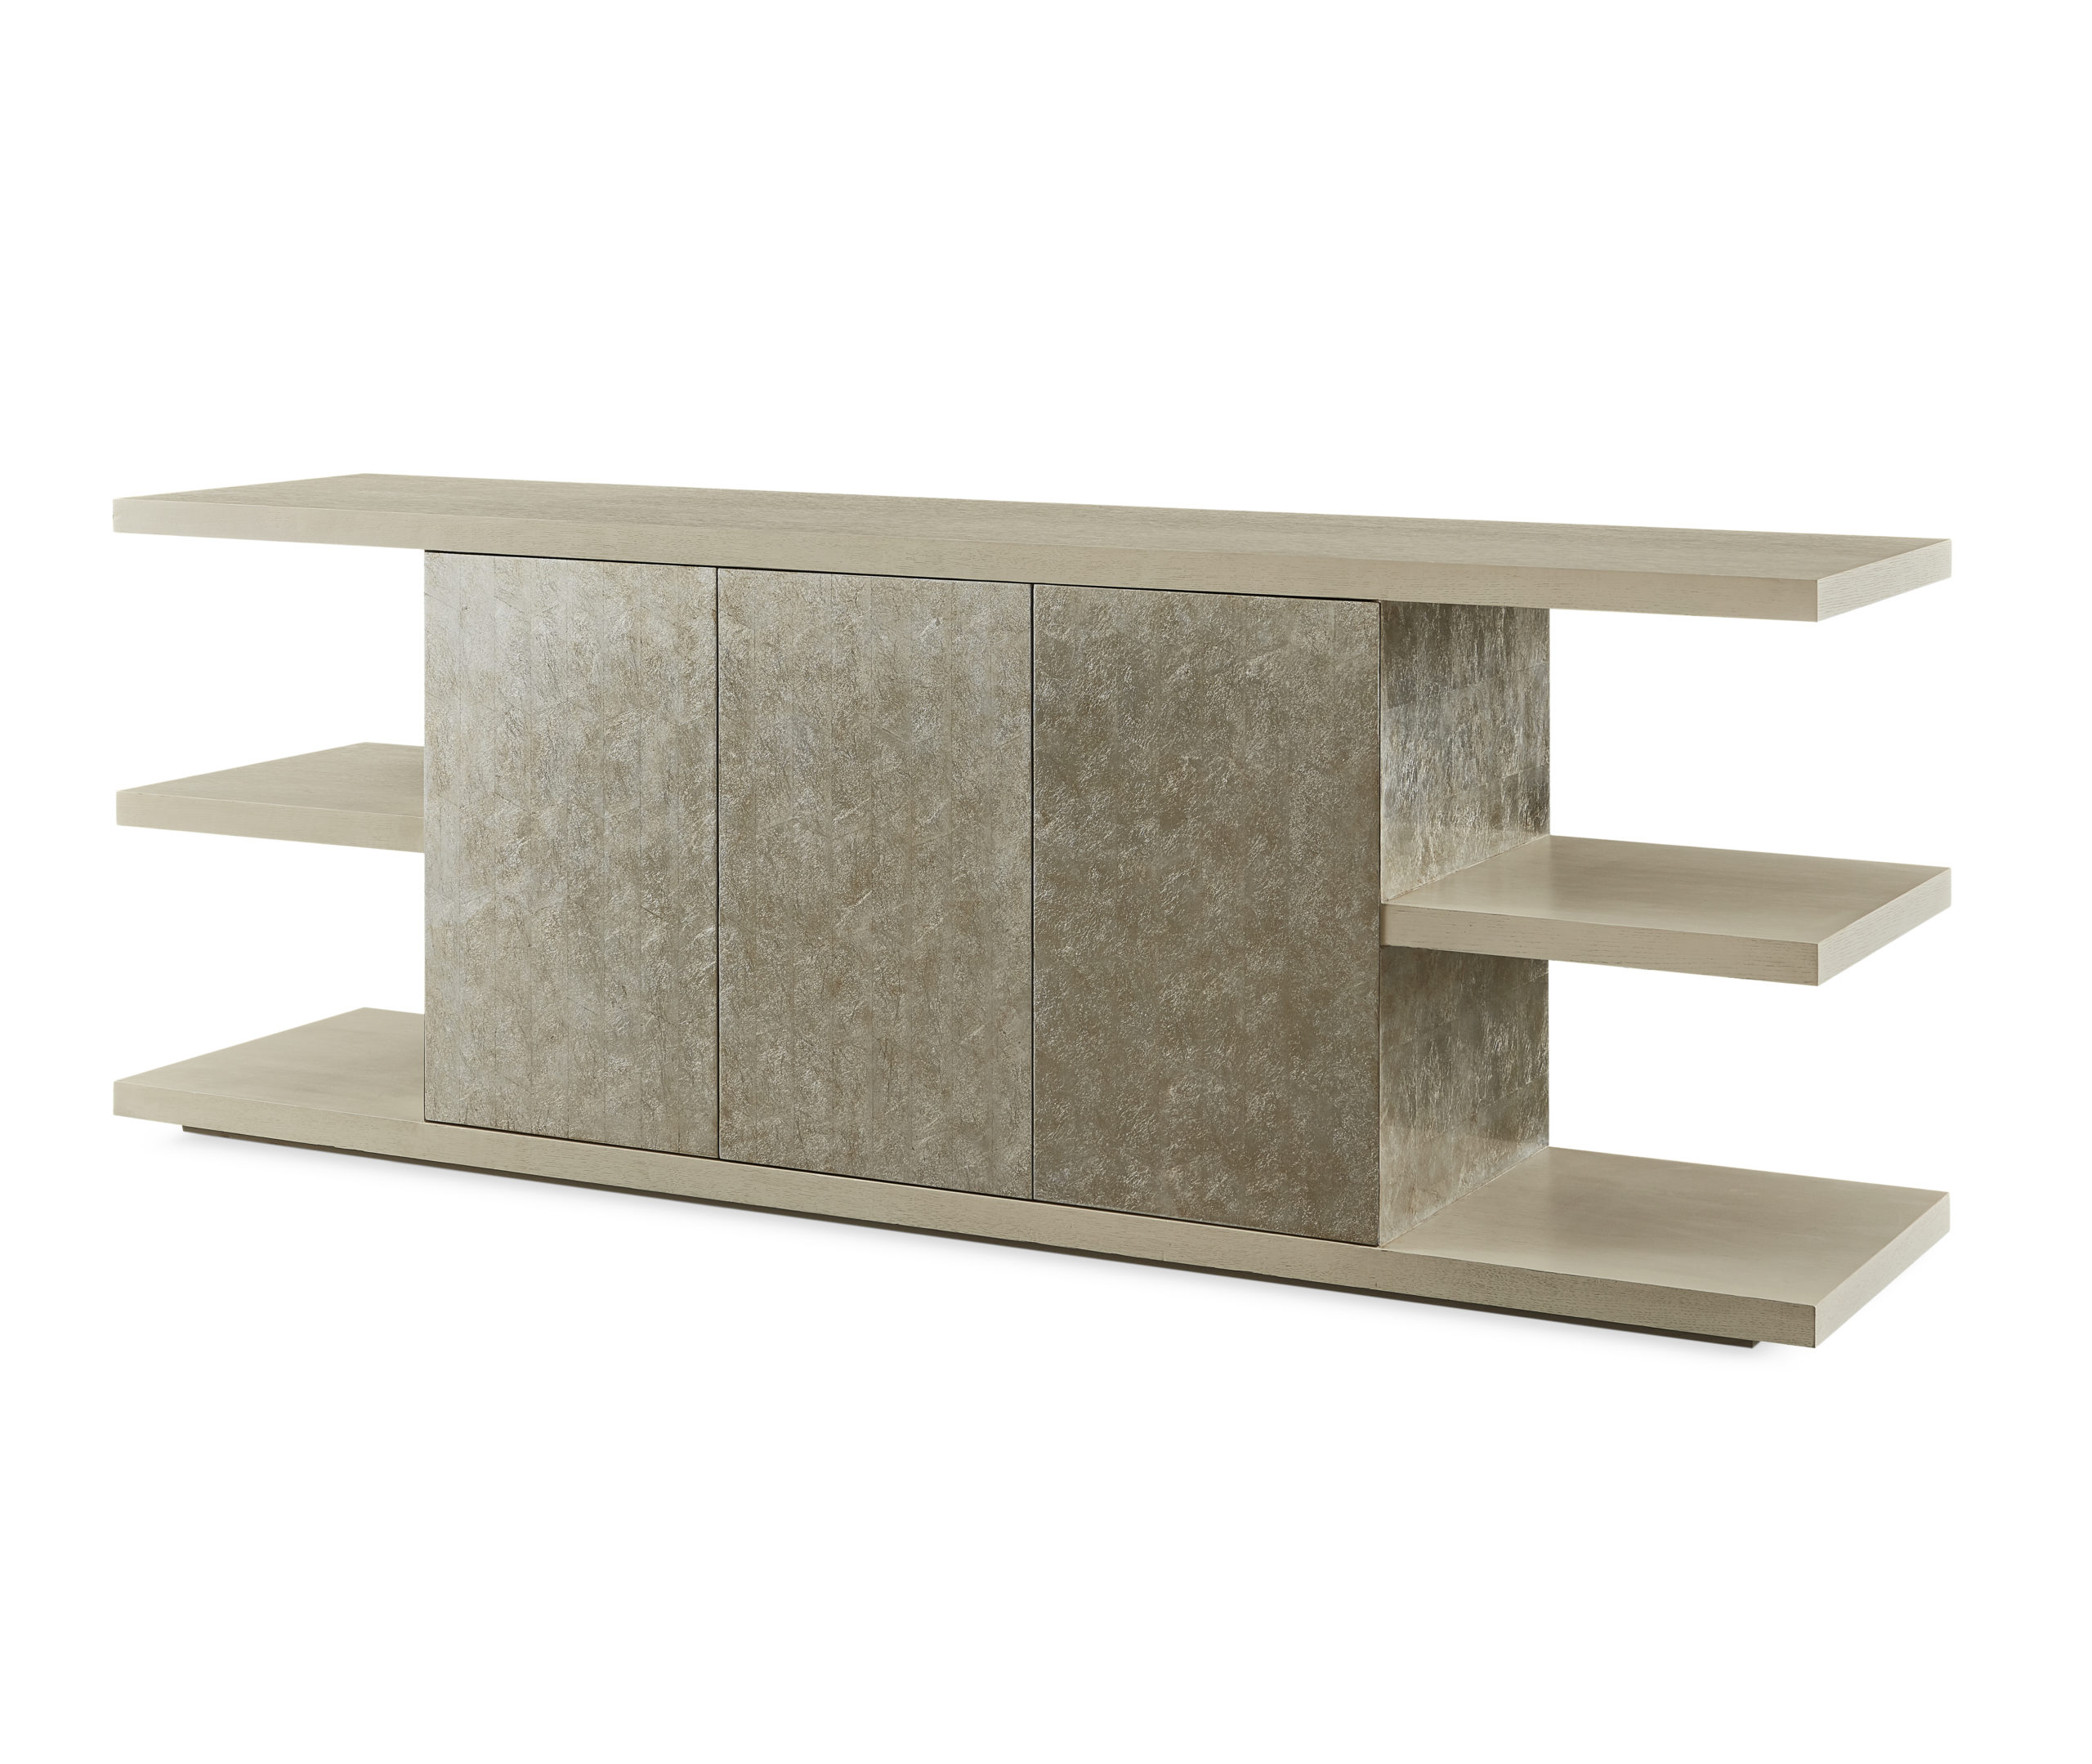 Baker_products_WNWN_hollis_media_console_BAA3064_FRONT_3QRT-scaled-2